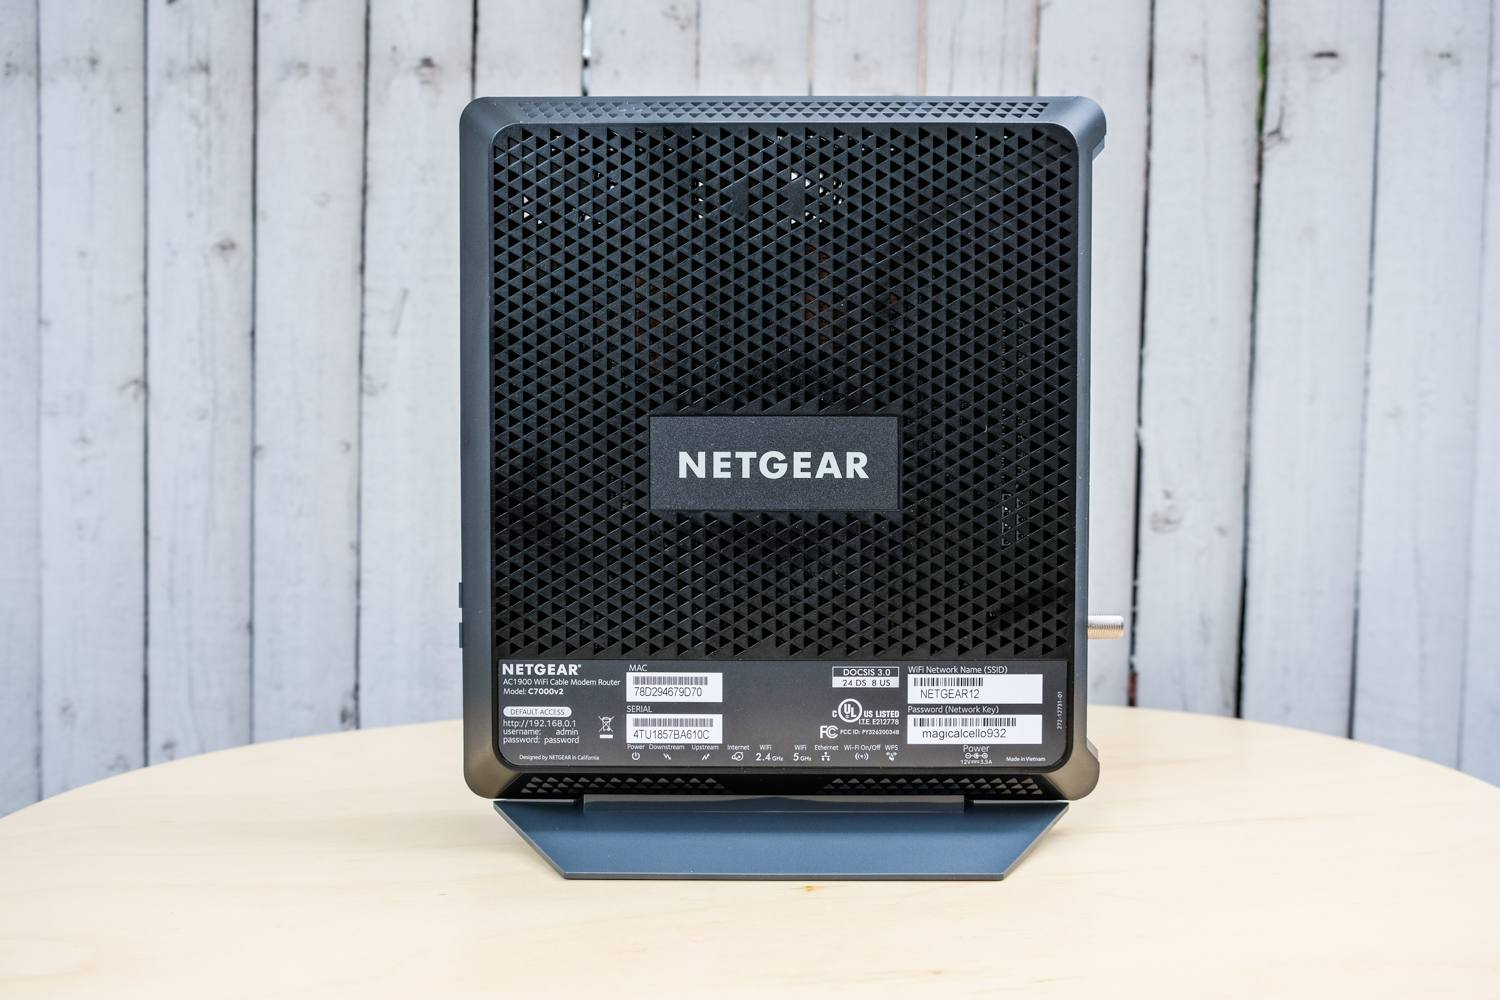 The 10 Best Cable Modem Router Combos To Buy In 2019